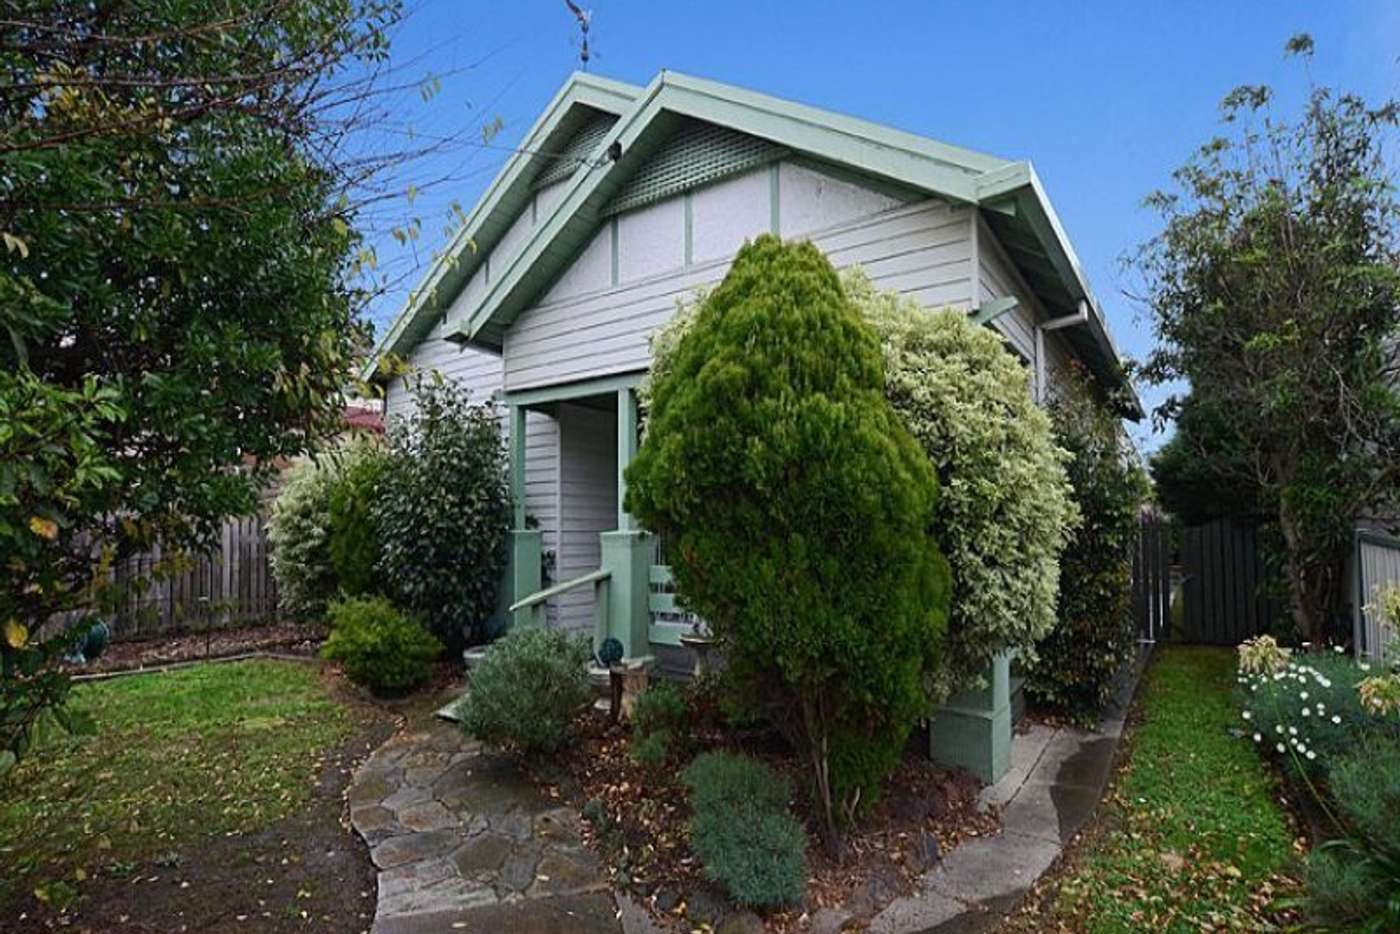 Main view of Homely house listing, 37 South Street, Preston VIC 3072